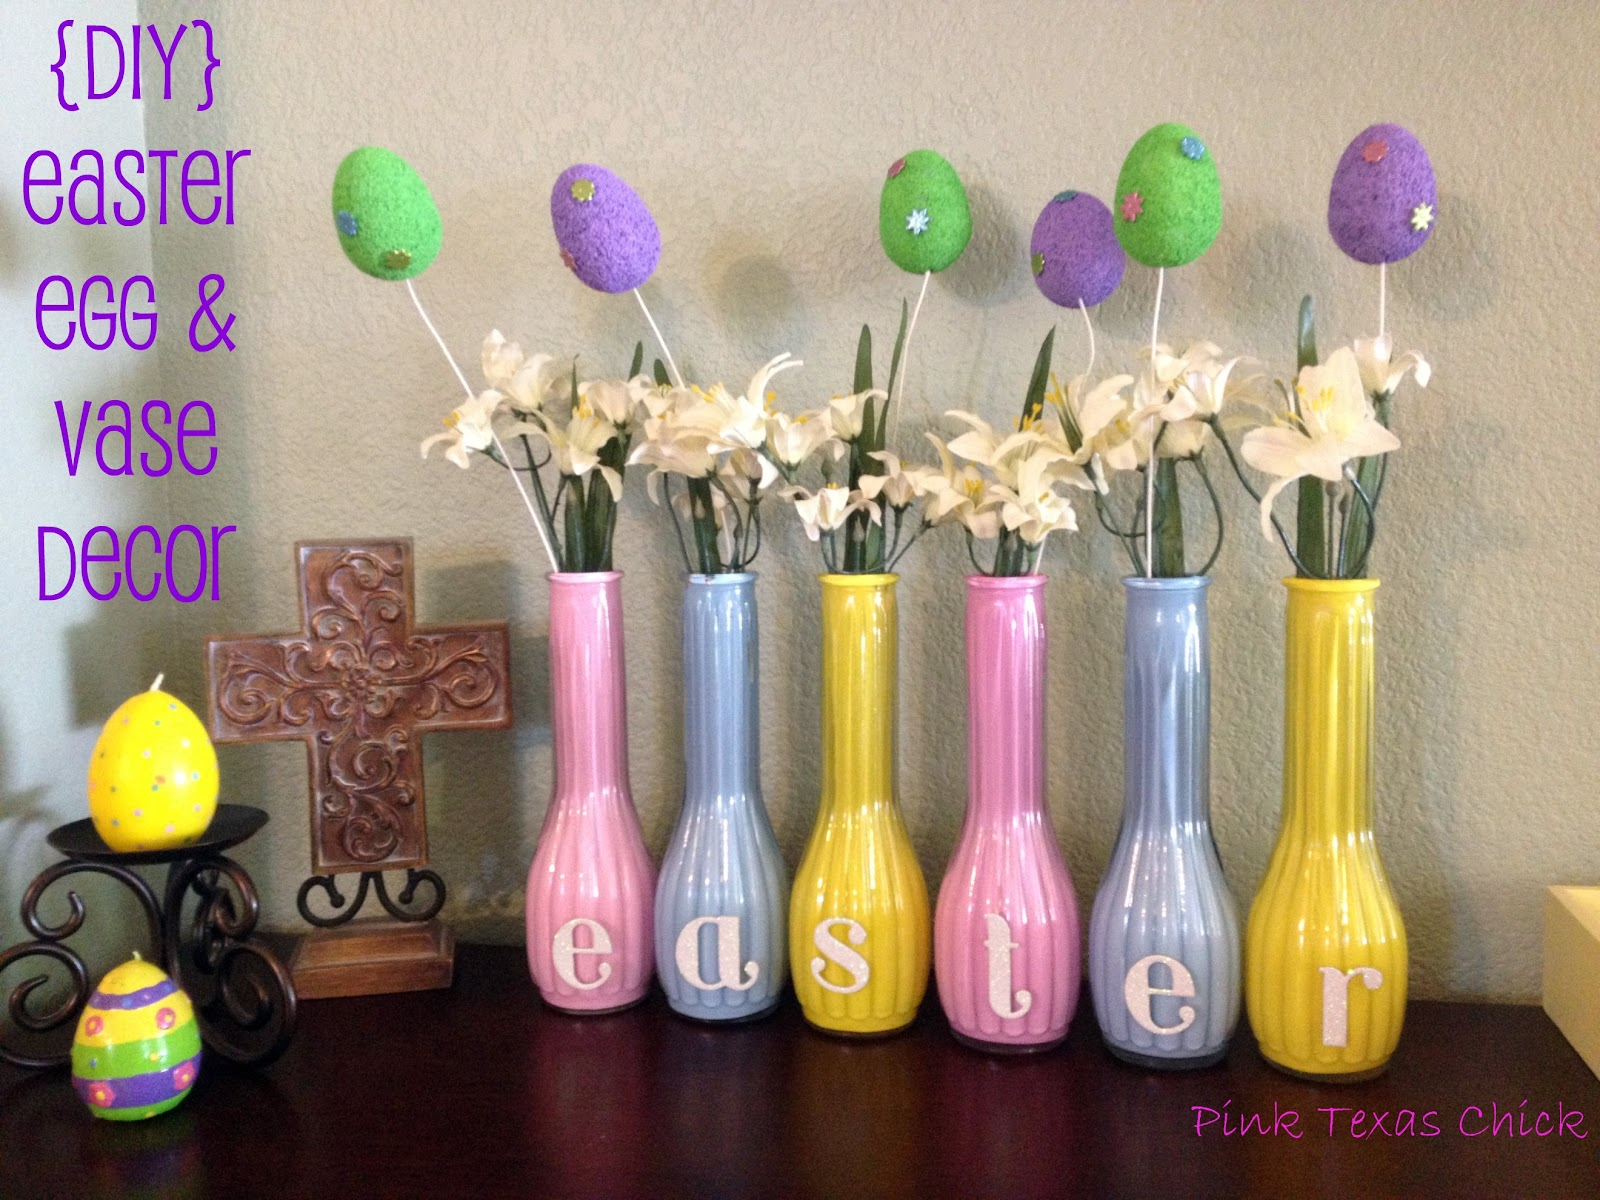 Pink Texas Chick: Easter Egg and Vase Decor {Craft DIY